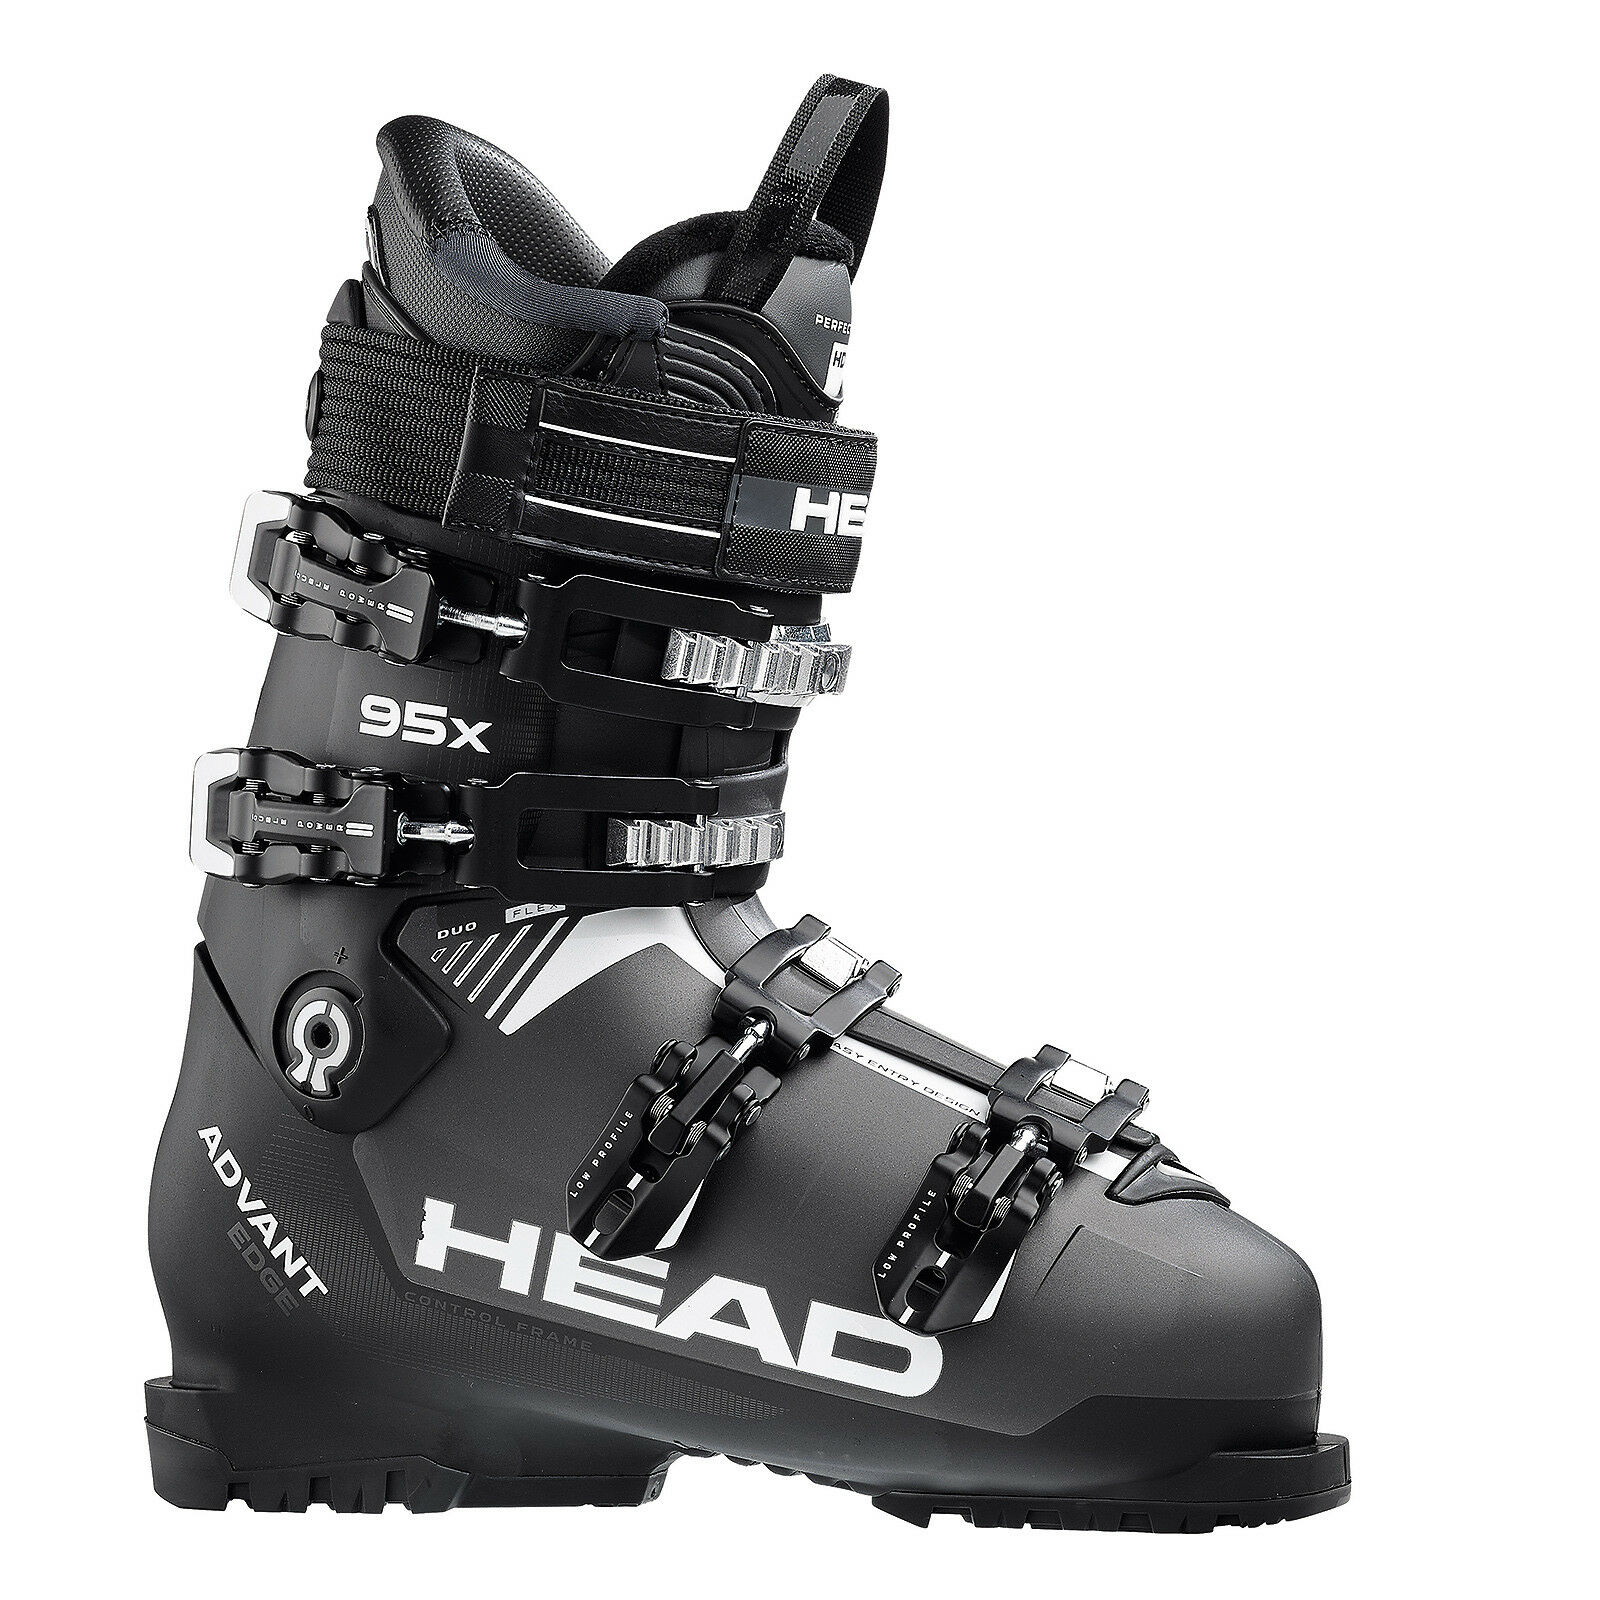 Head Herren Skischuhe - ADVANT EDGE 95X - 608123 -